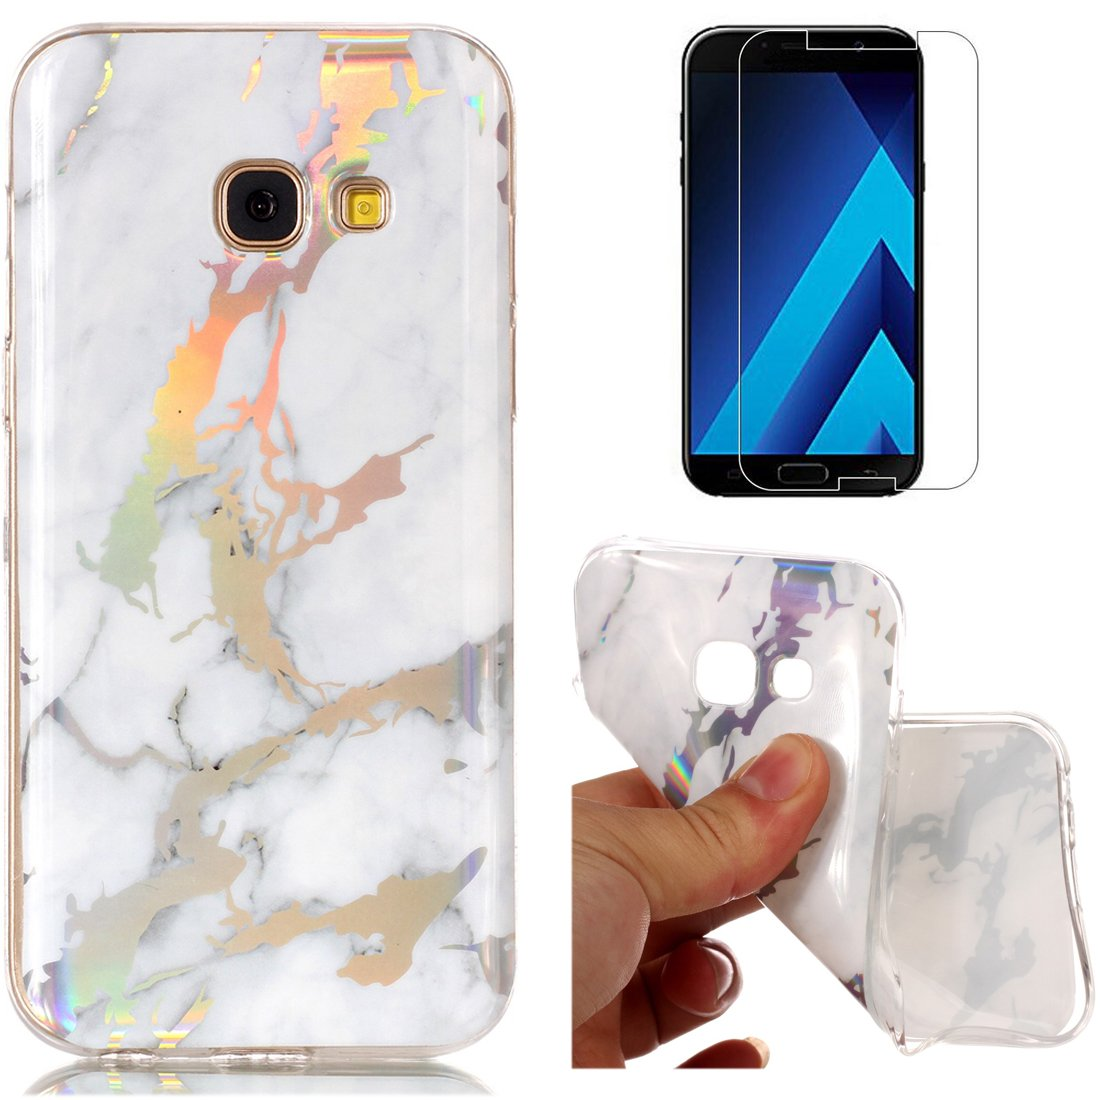 for Samsung Galaxy A5 2017 A520 Marble Case with Screen Protector,OYIME Creative Glossy Green Marble Pattern Design Protective Bumper Soft Silicone Slim Thin Rubber Luxury Shockproof Cover